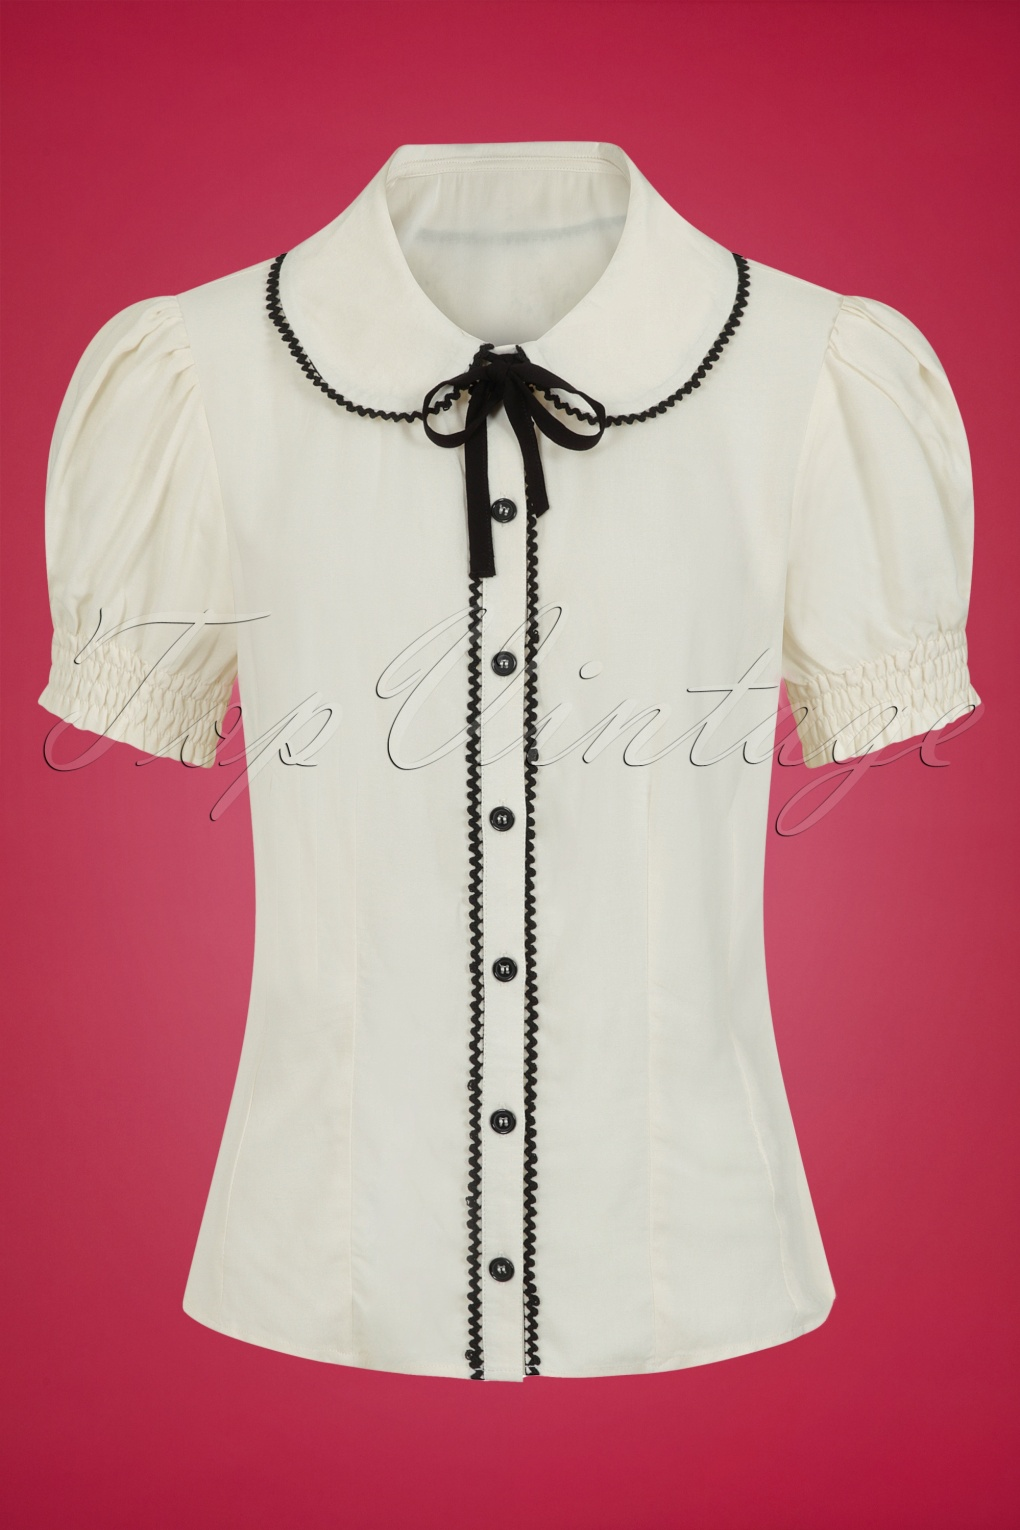 1960s Style Clothing & 60s Fashion 50s Calliste Blouse in Cream £40.56 AT vintagedancer.com